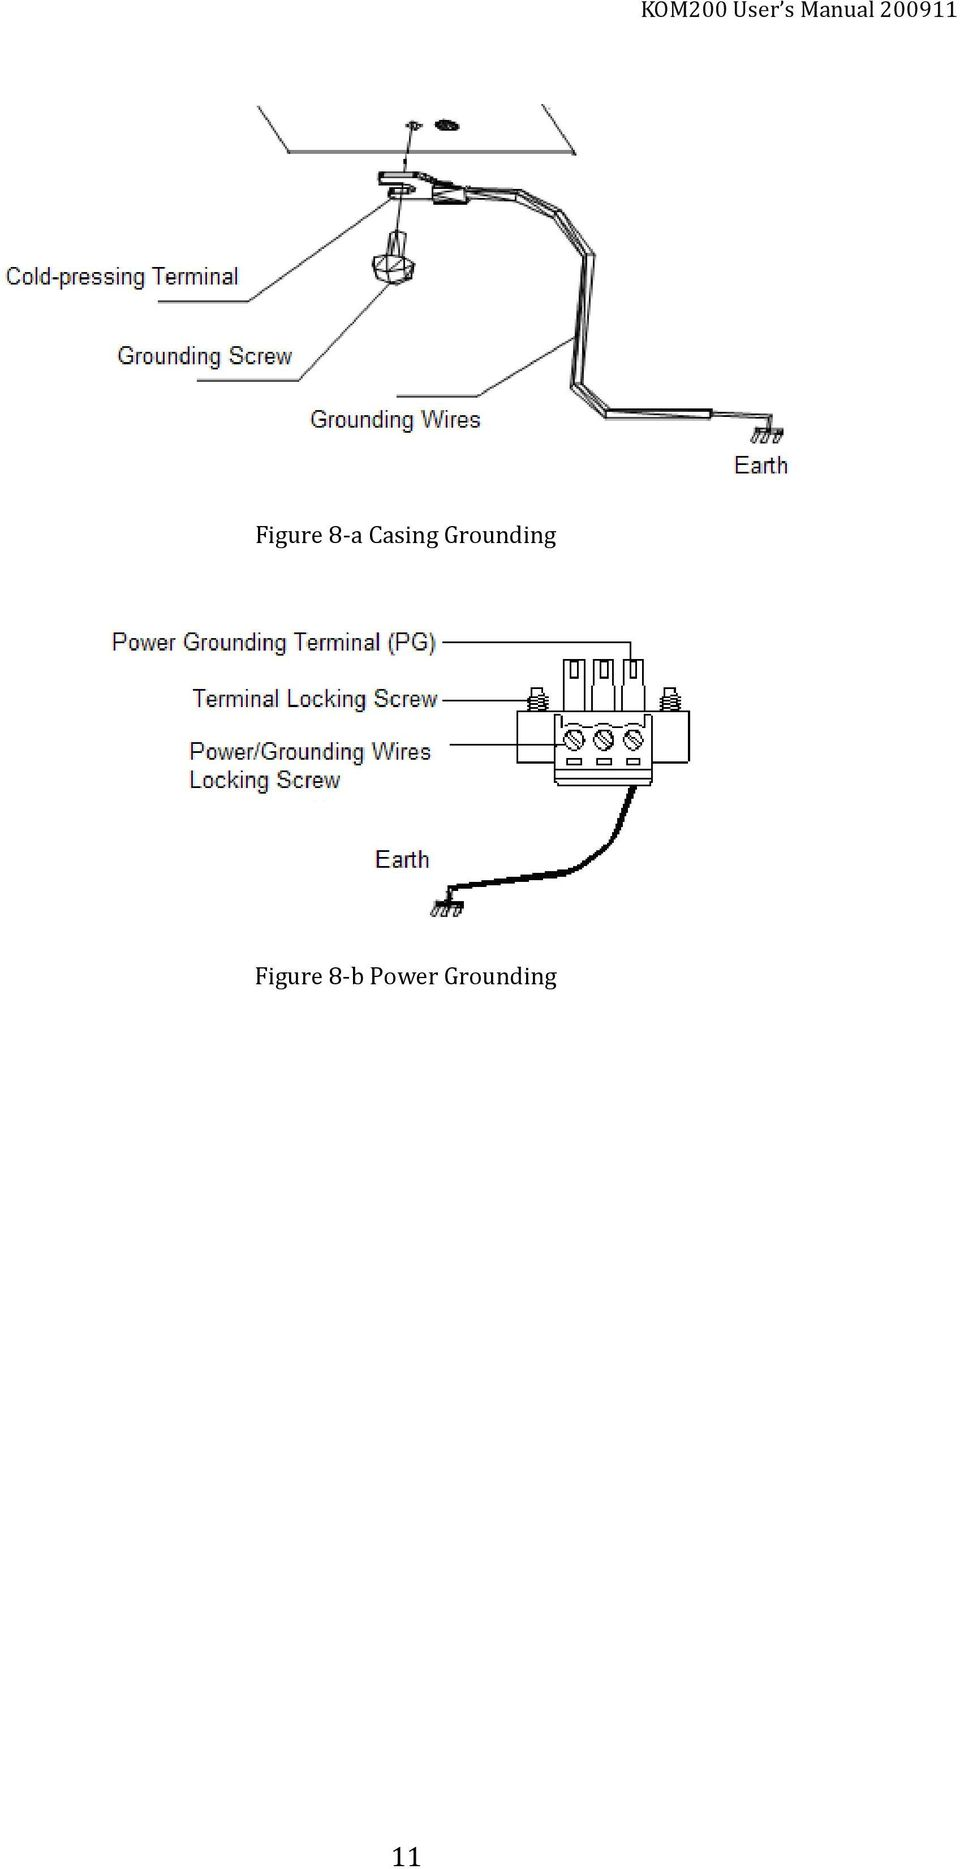 Casing Grounding